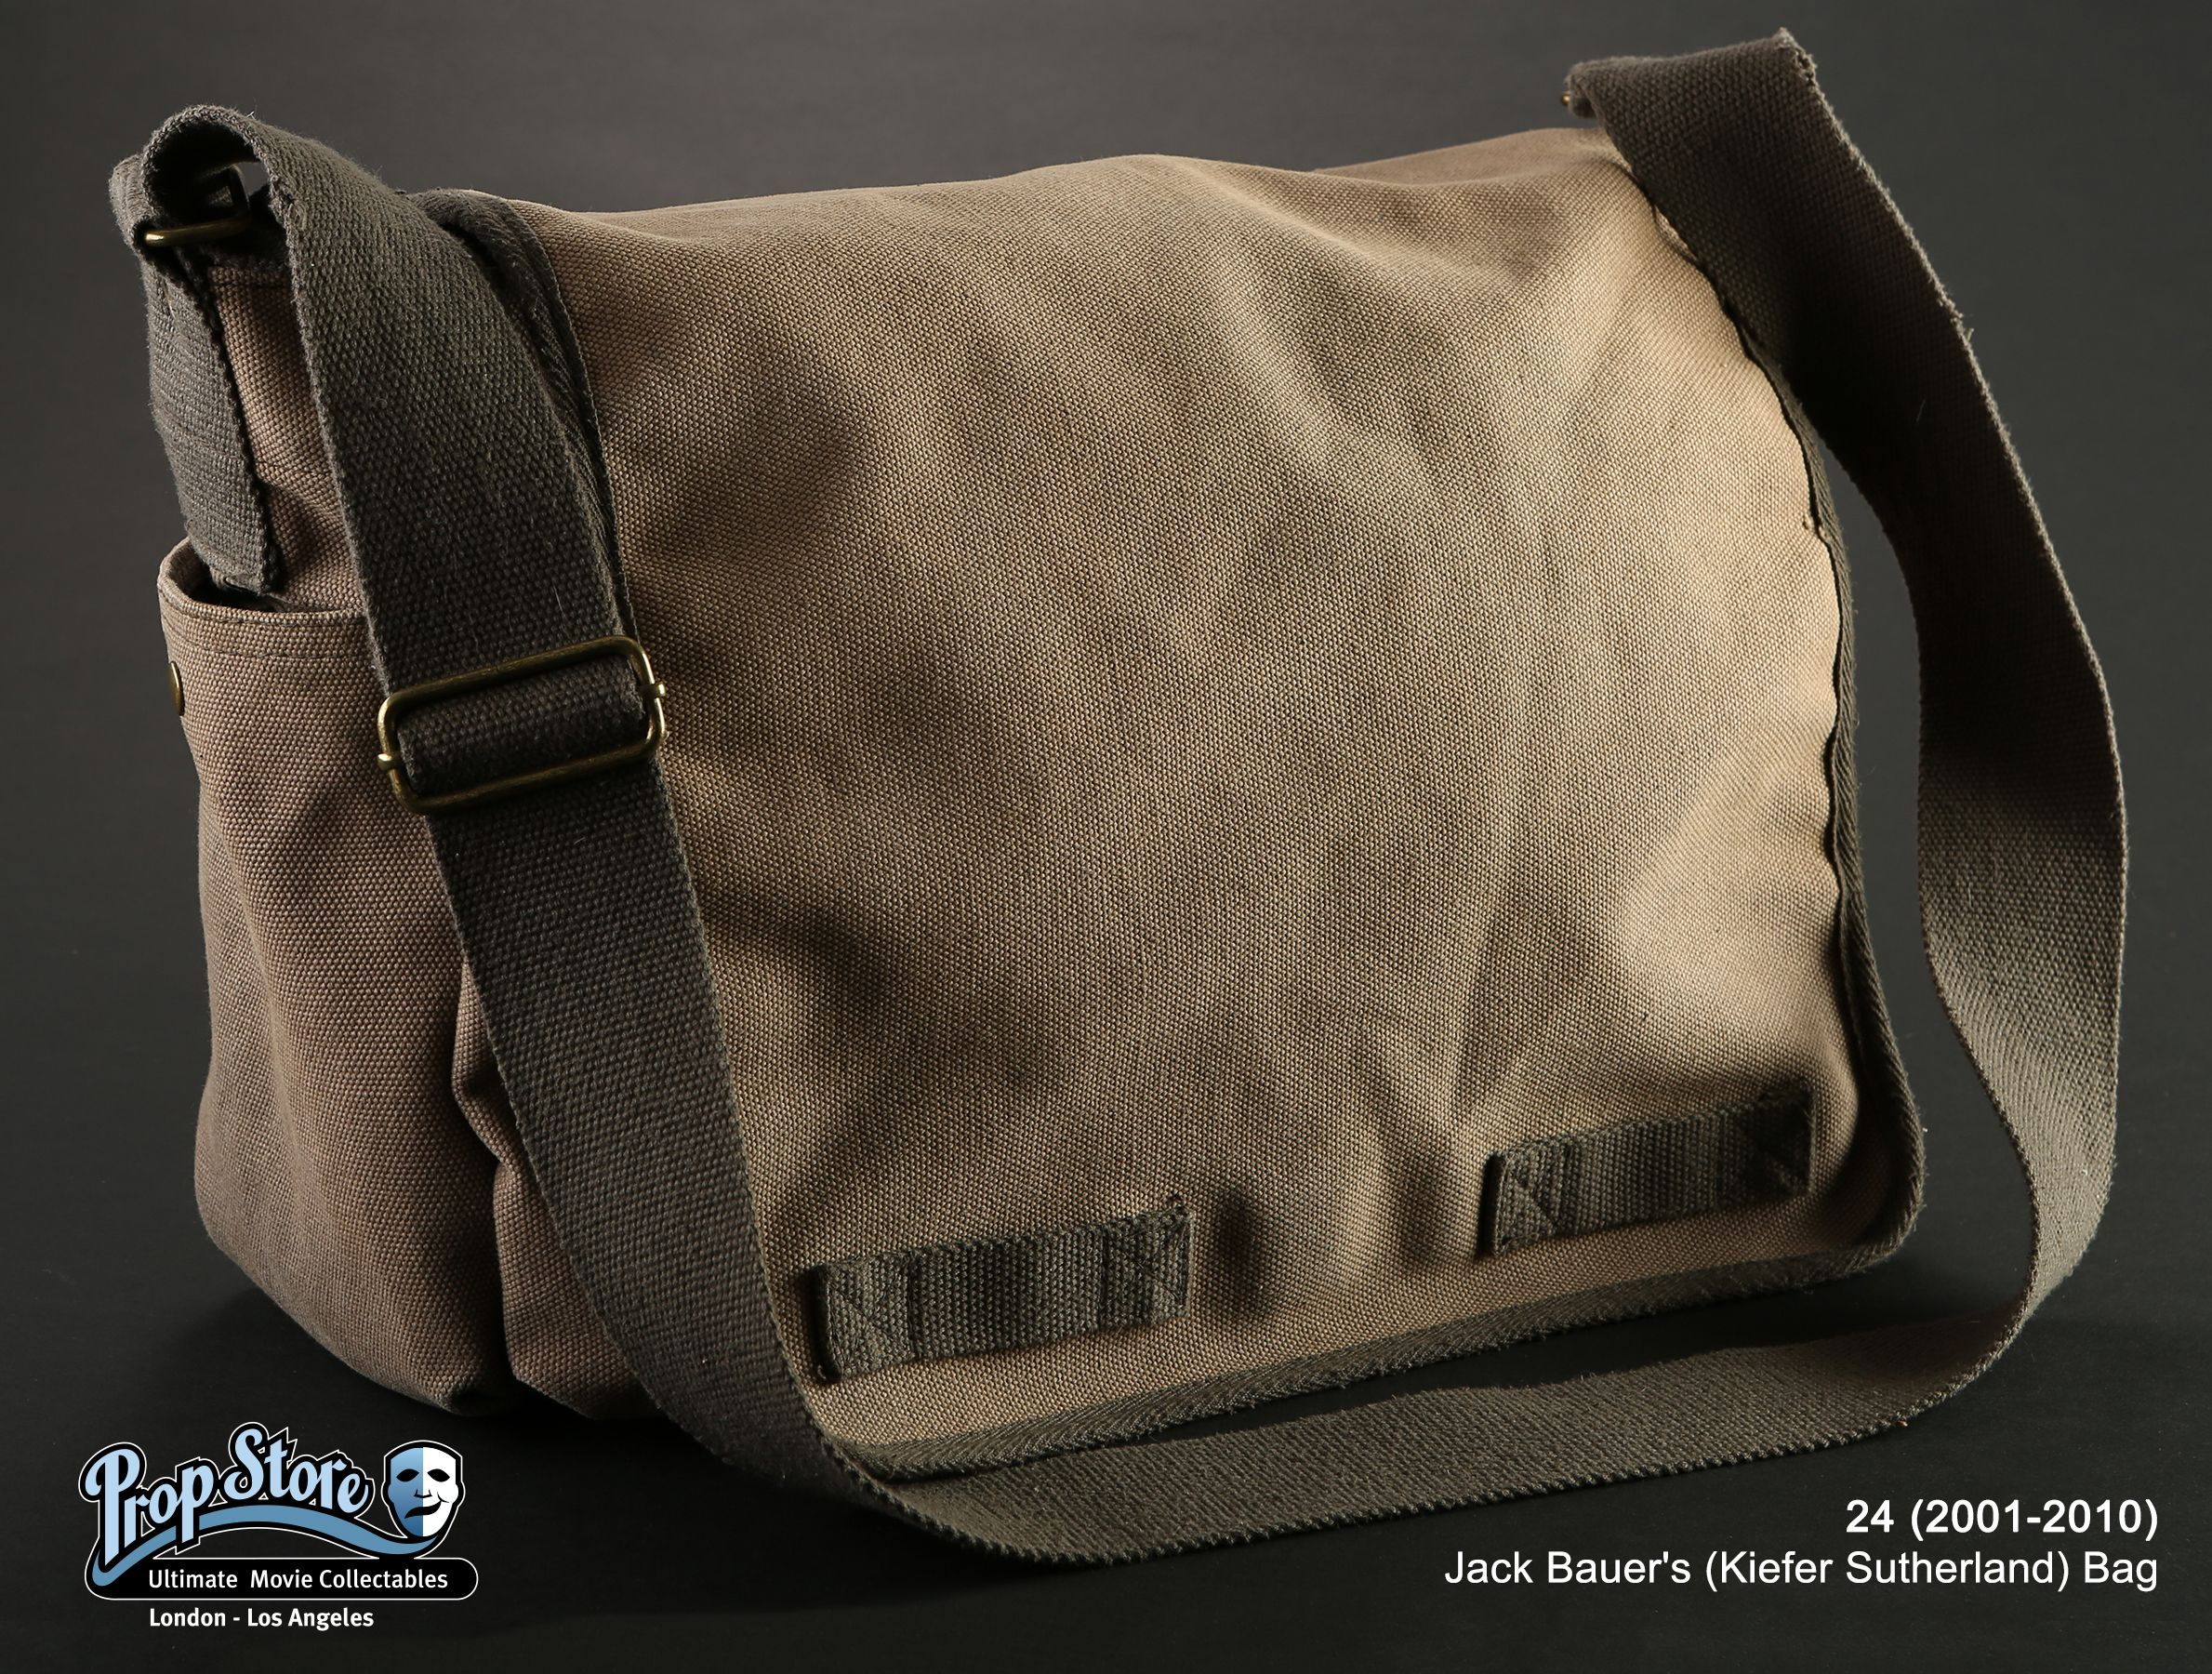 """It's not a purse, it's a """"Jack Sack!"""" For today's #USFeaturedItem we have Jack Bauer's (Kiefer Sutherland) Bag from the TV Series 24! Check it out now here: ow.ly/iiEN306OtZt  #24 #FilmProps #JackBauer #KieferSutherland #FeaturedItem #PropStore"""